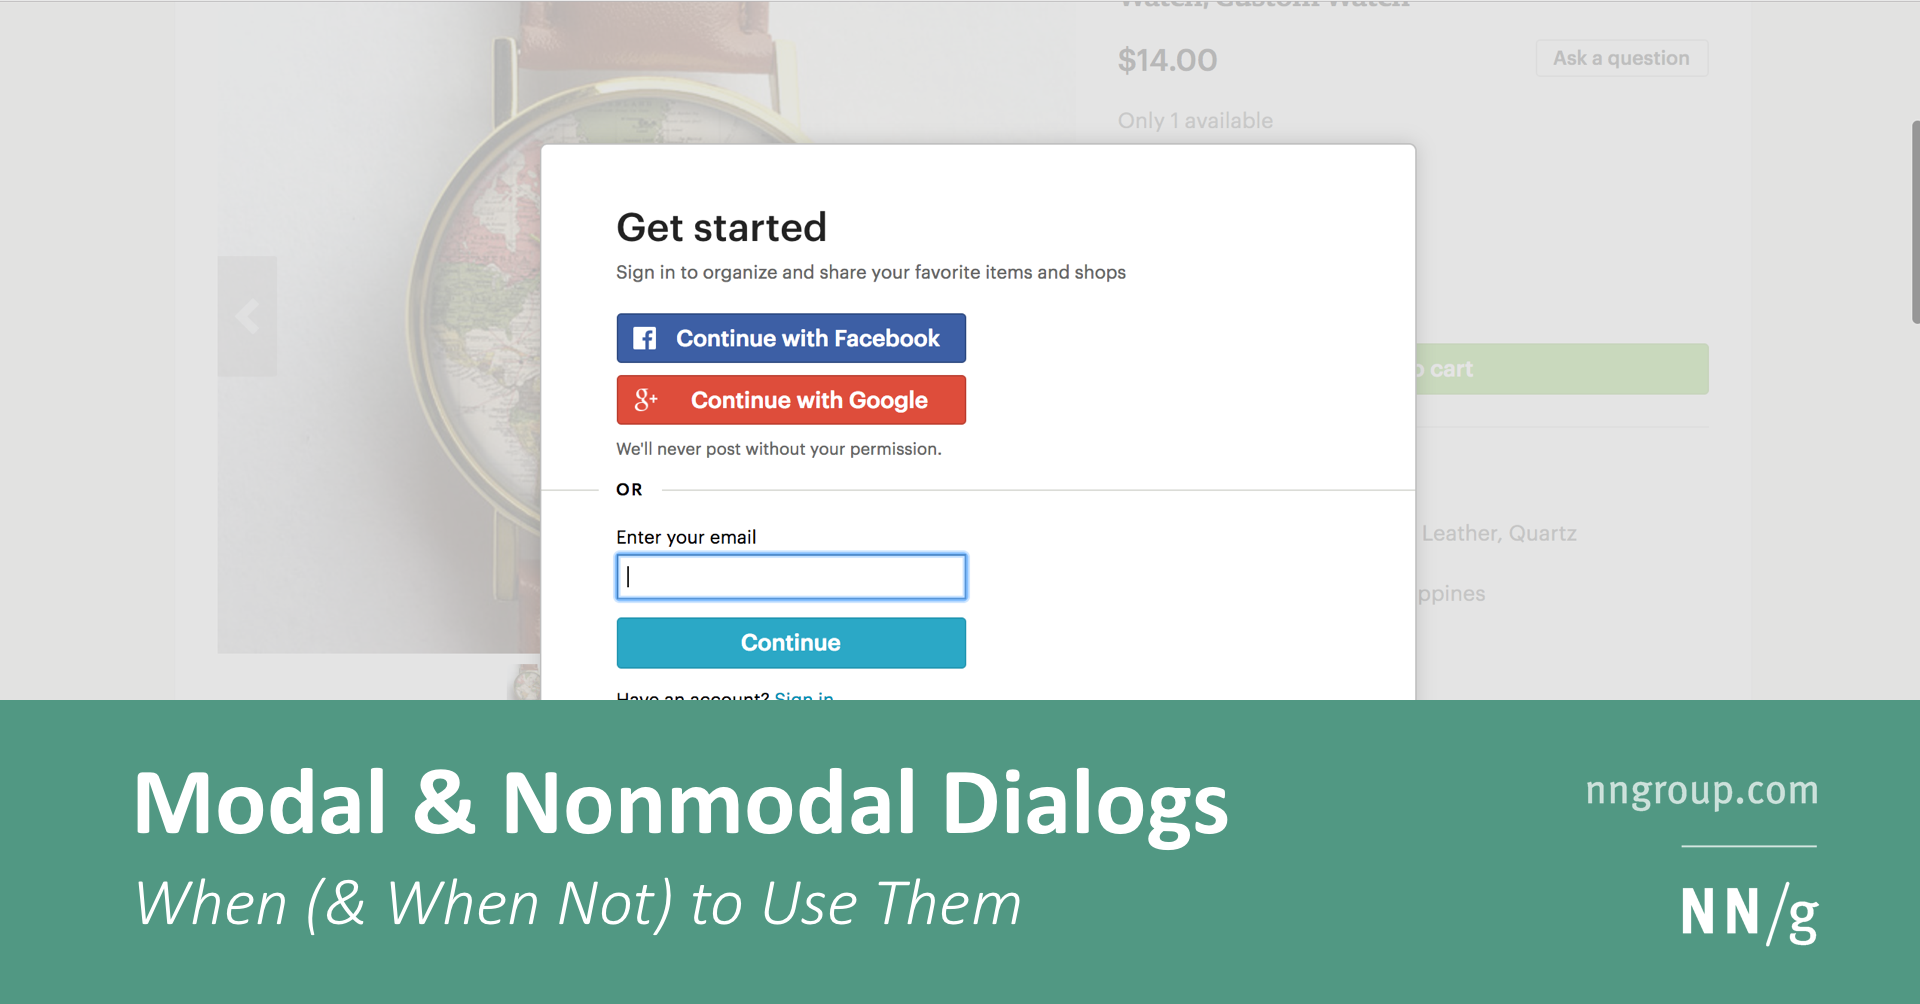 Modal & Nonmodal Dialogs: When (& When Not) to Use Them